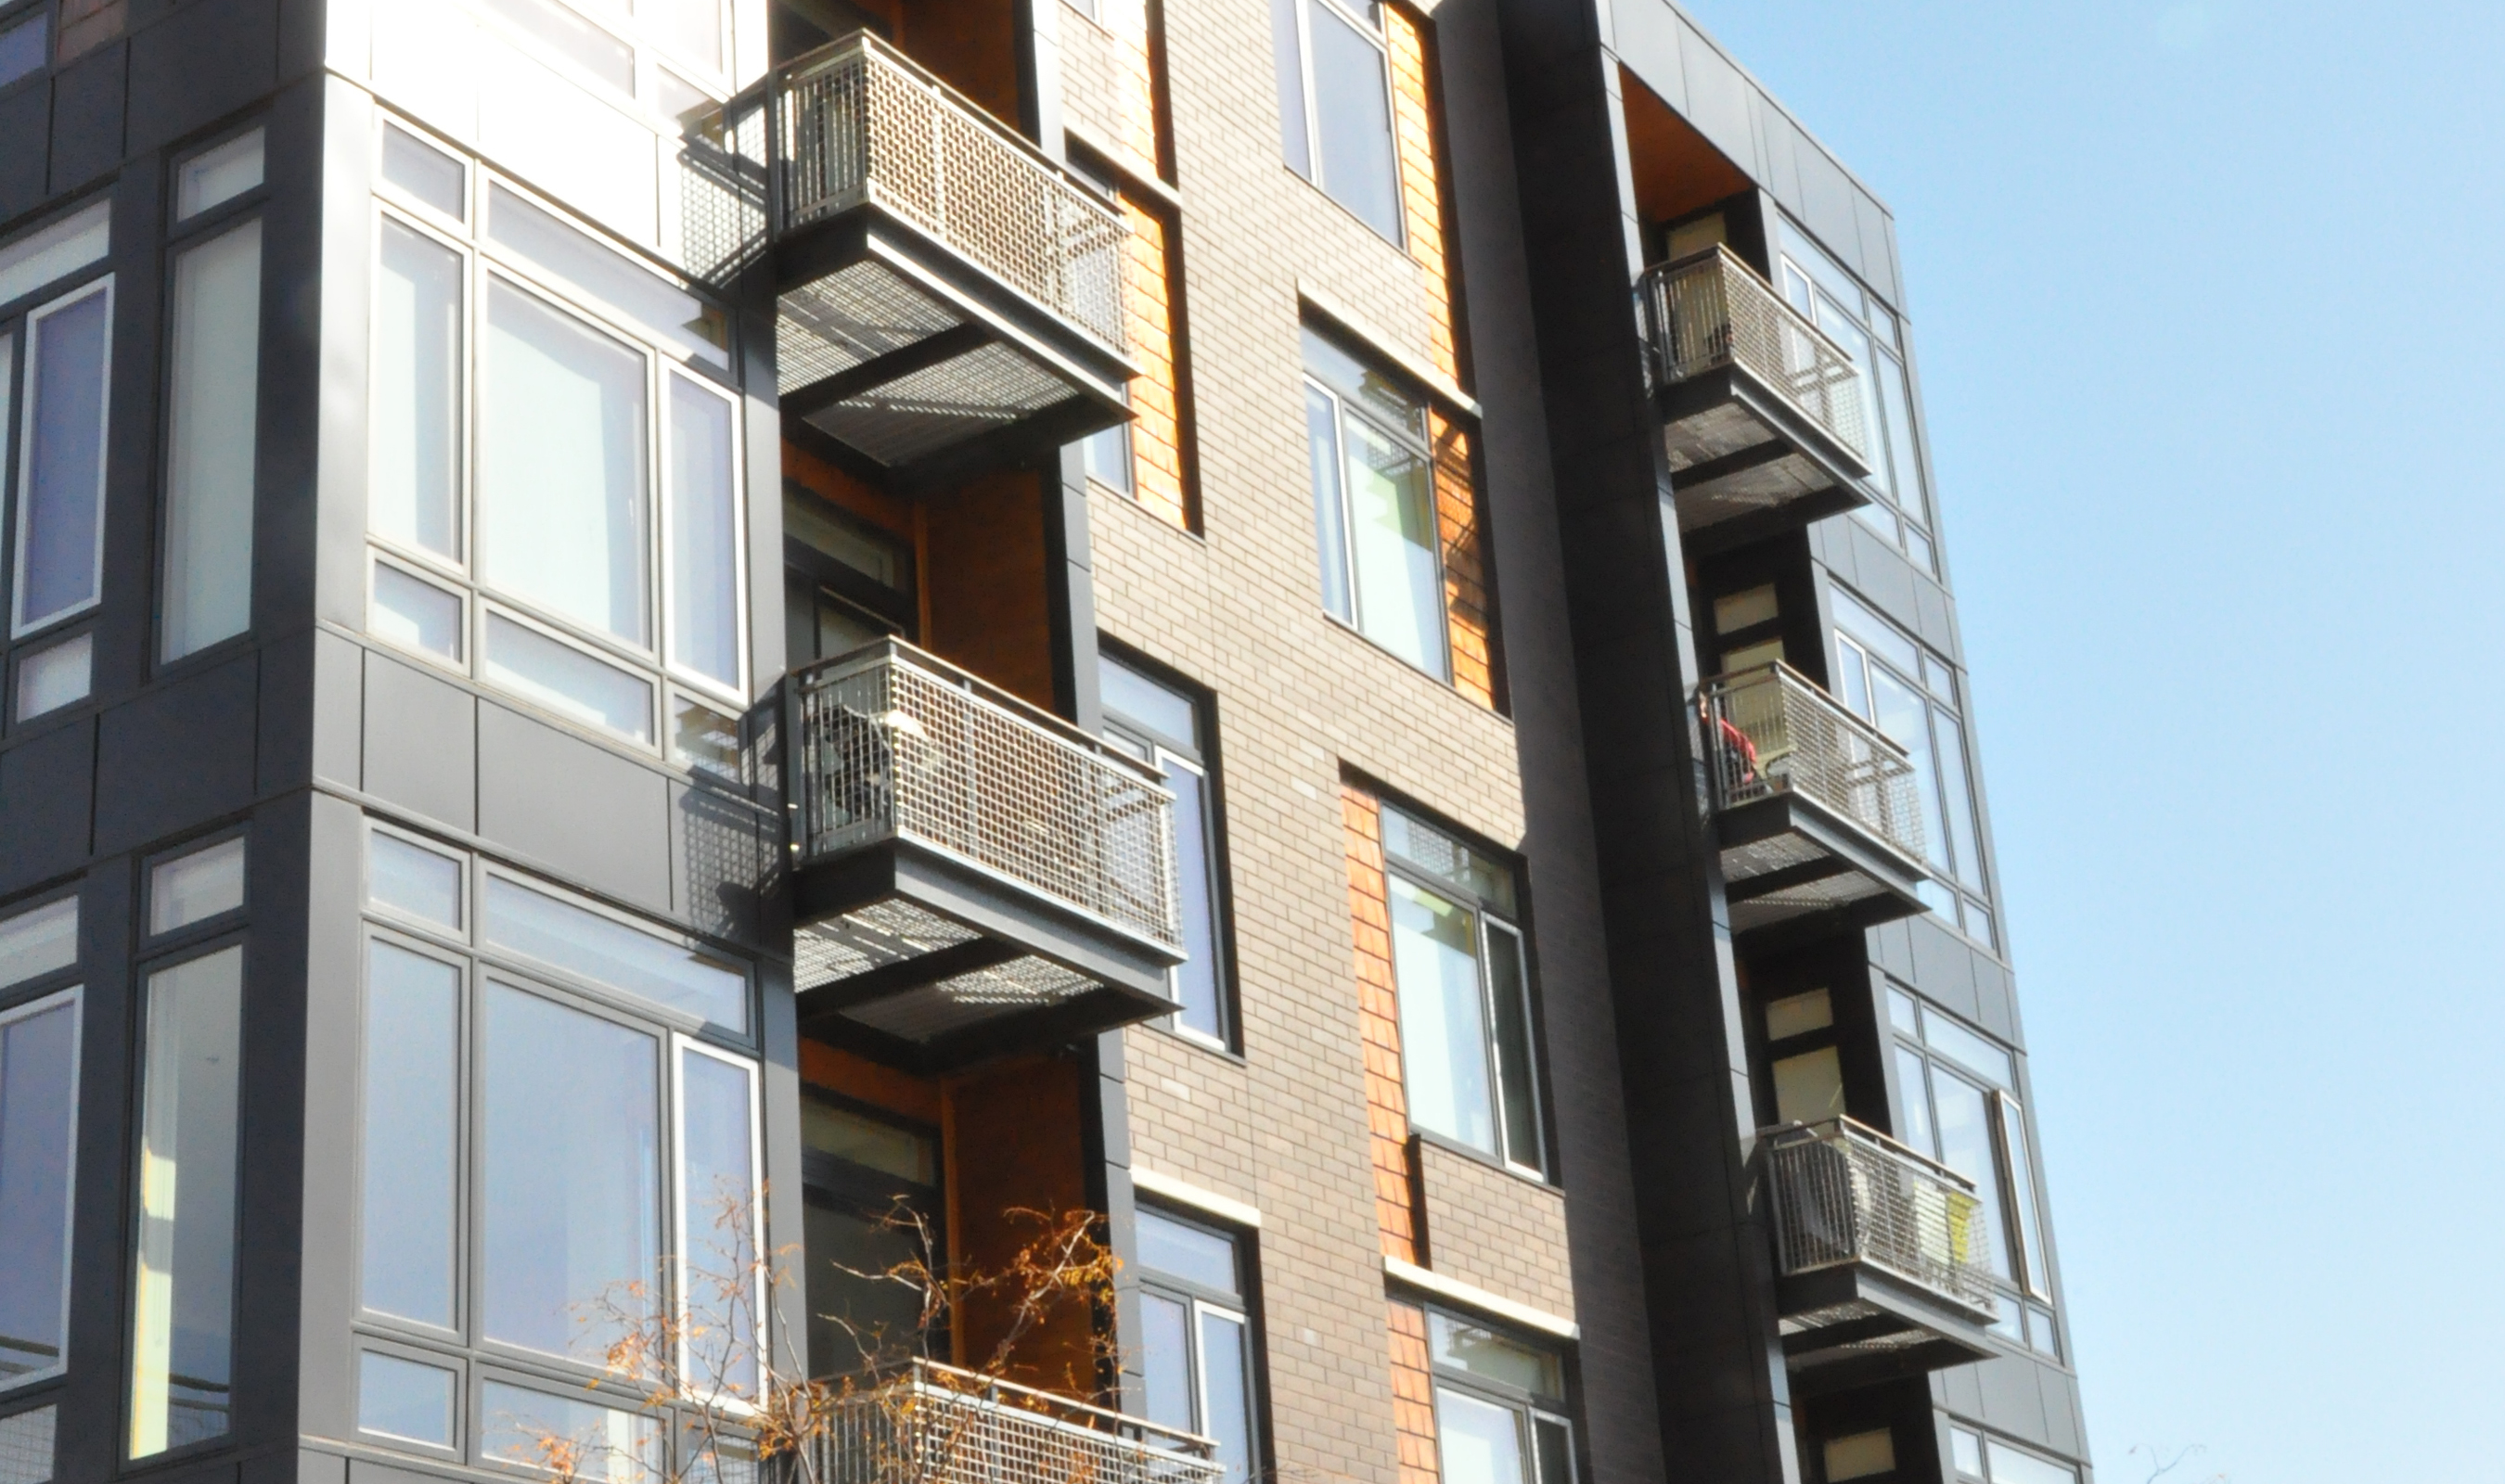 The balconies for this mixed-use building were fabricated using Banker Wire's L-62 woven wire mesh in stainless.